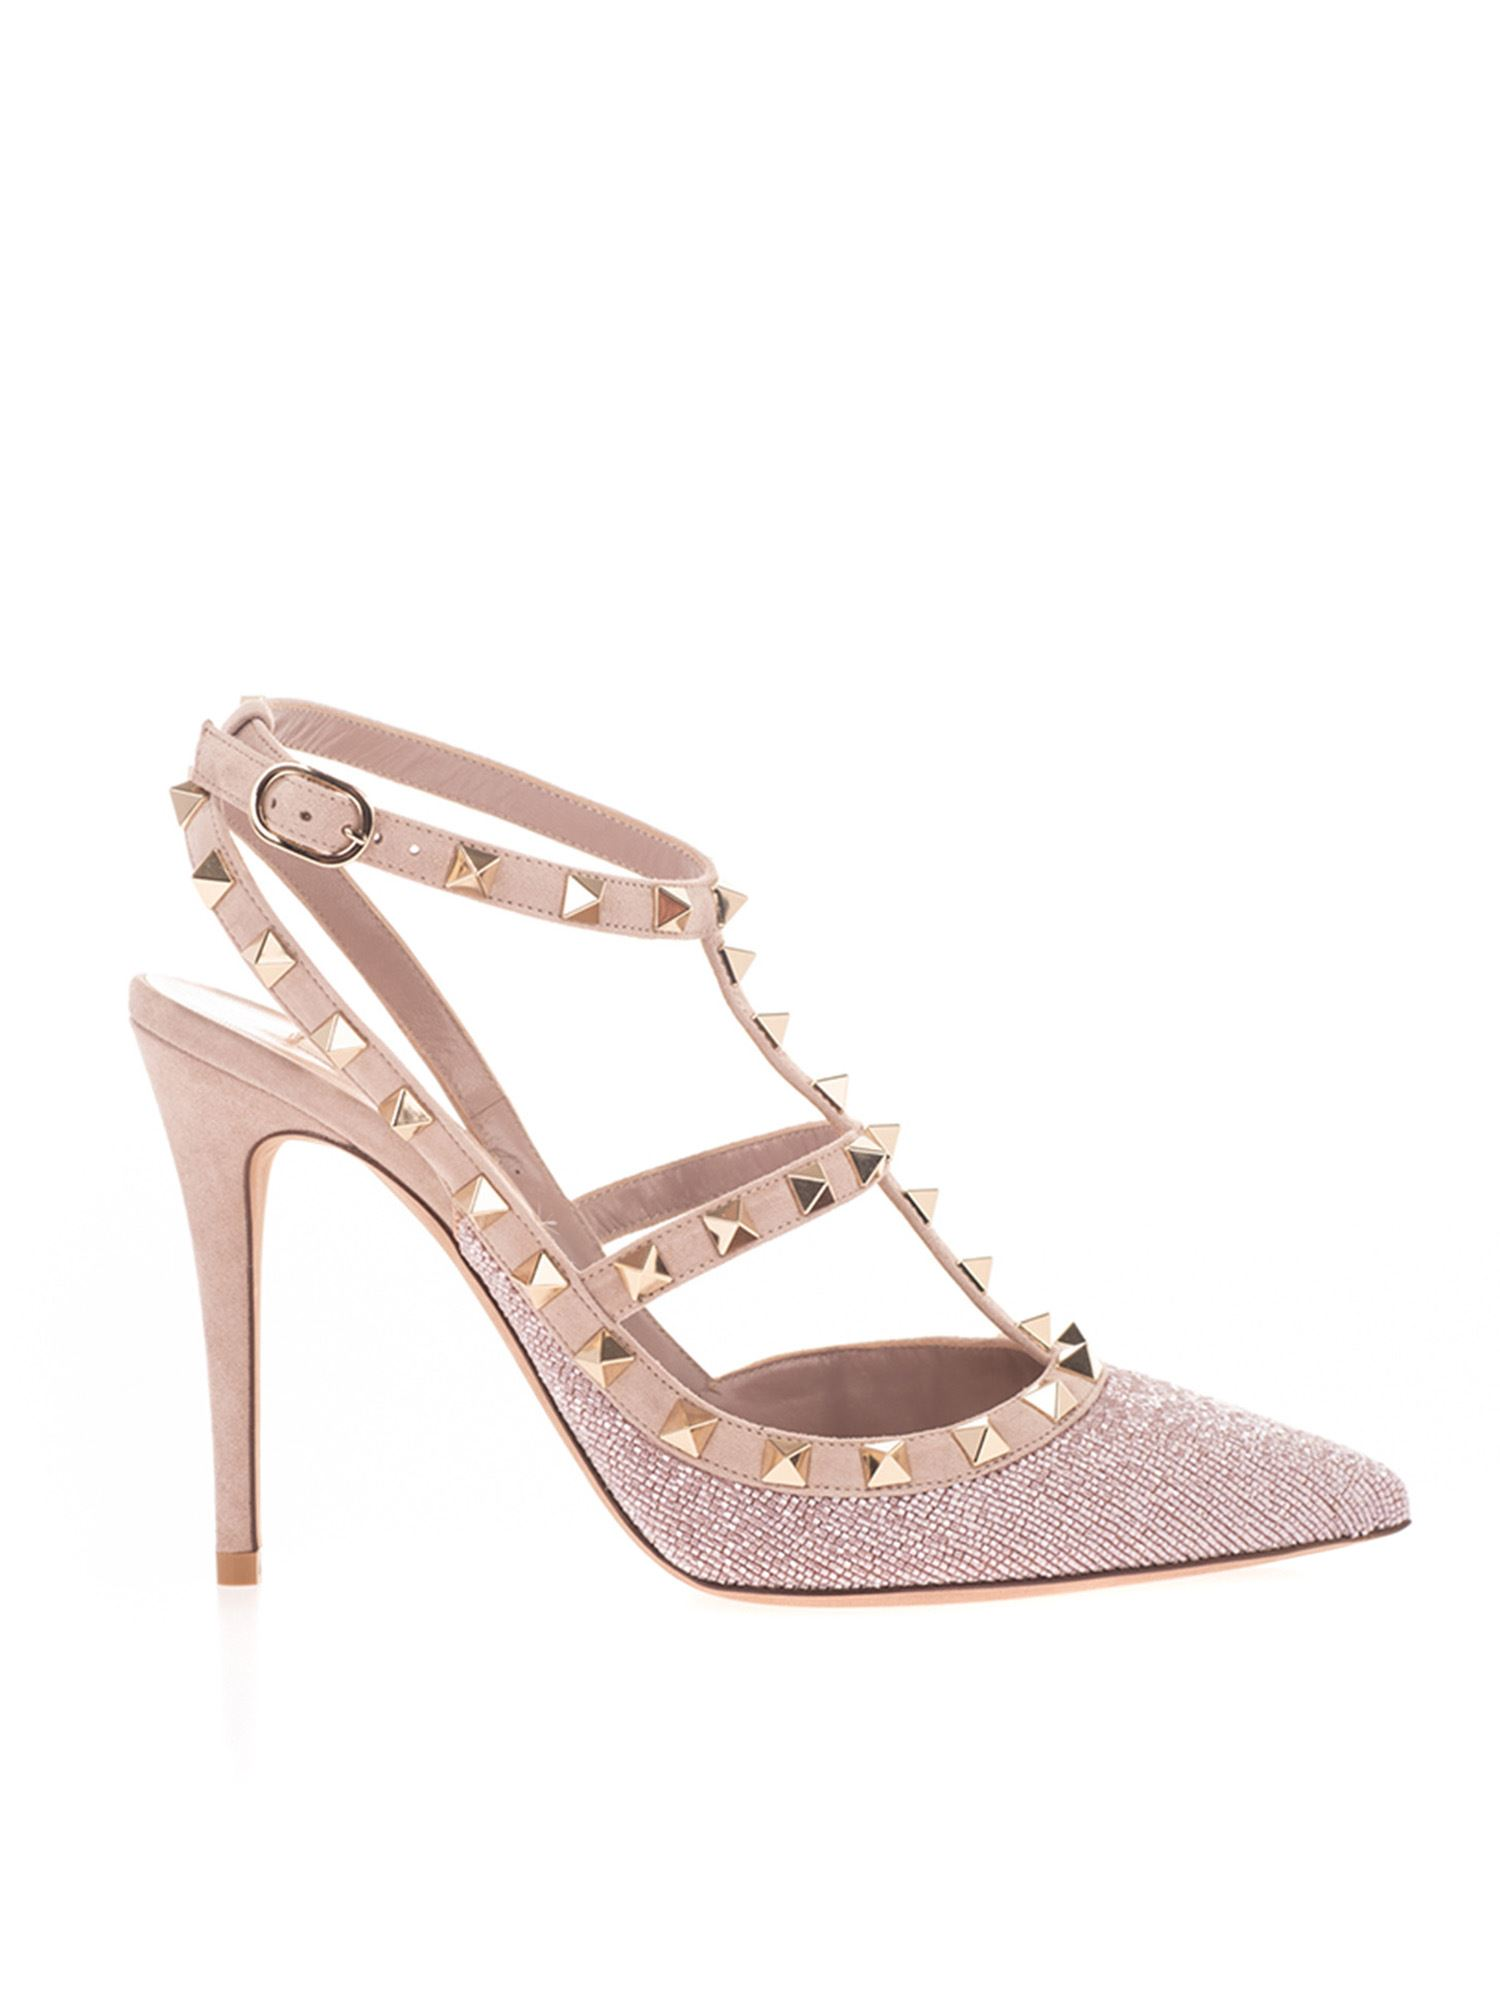 Valentino BEADED ROCKSTUD PUMPS IN PINK